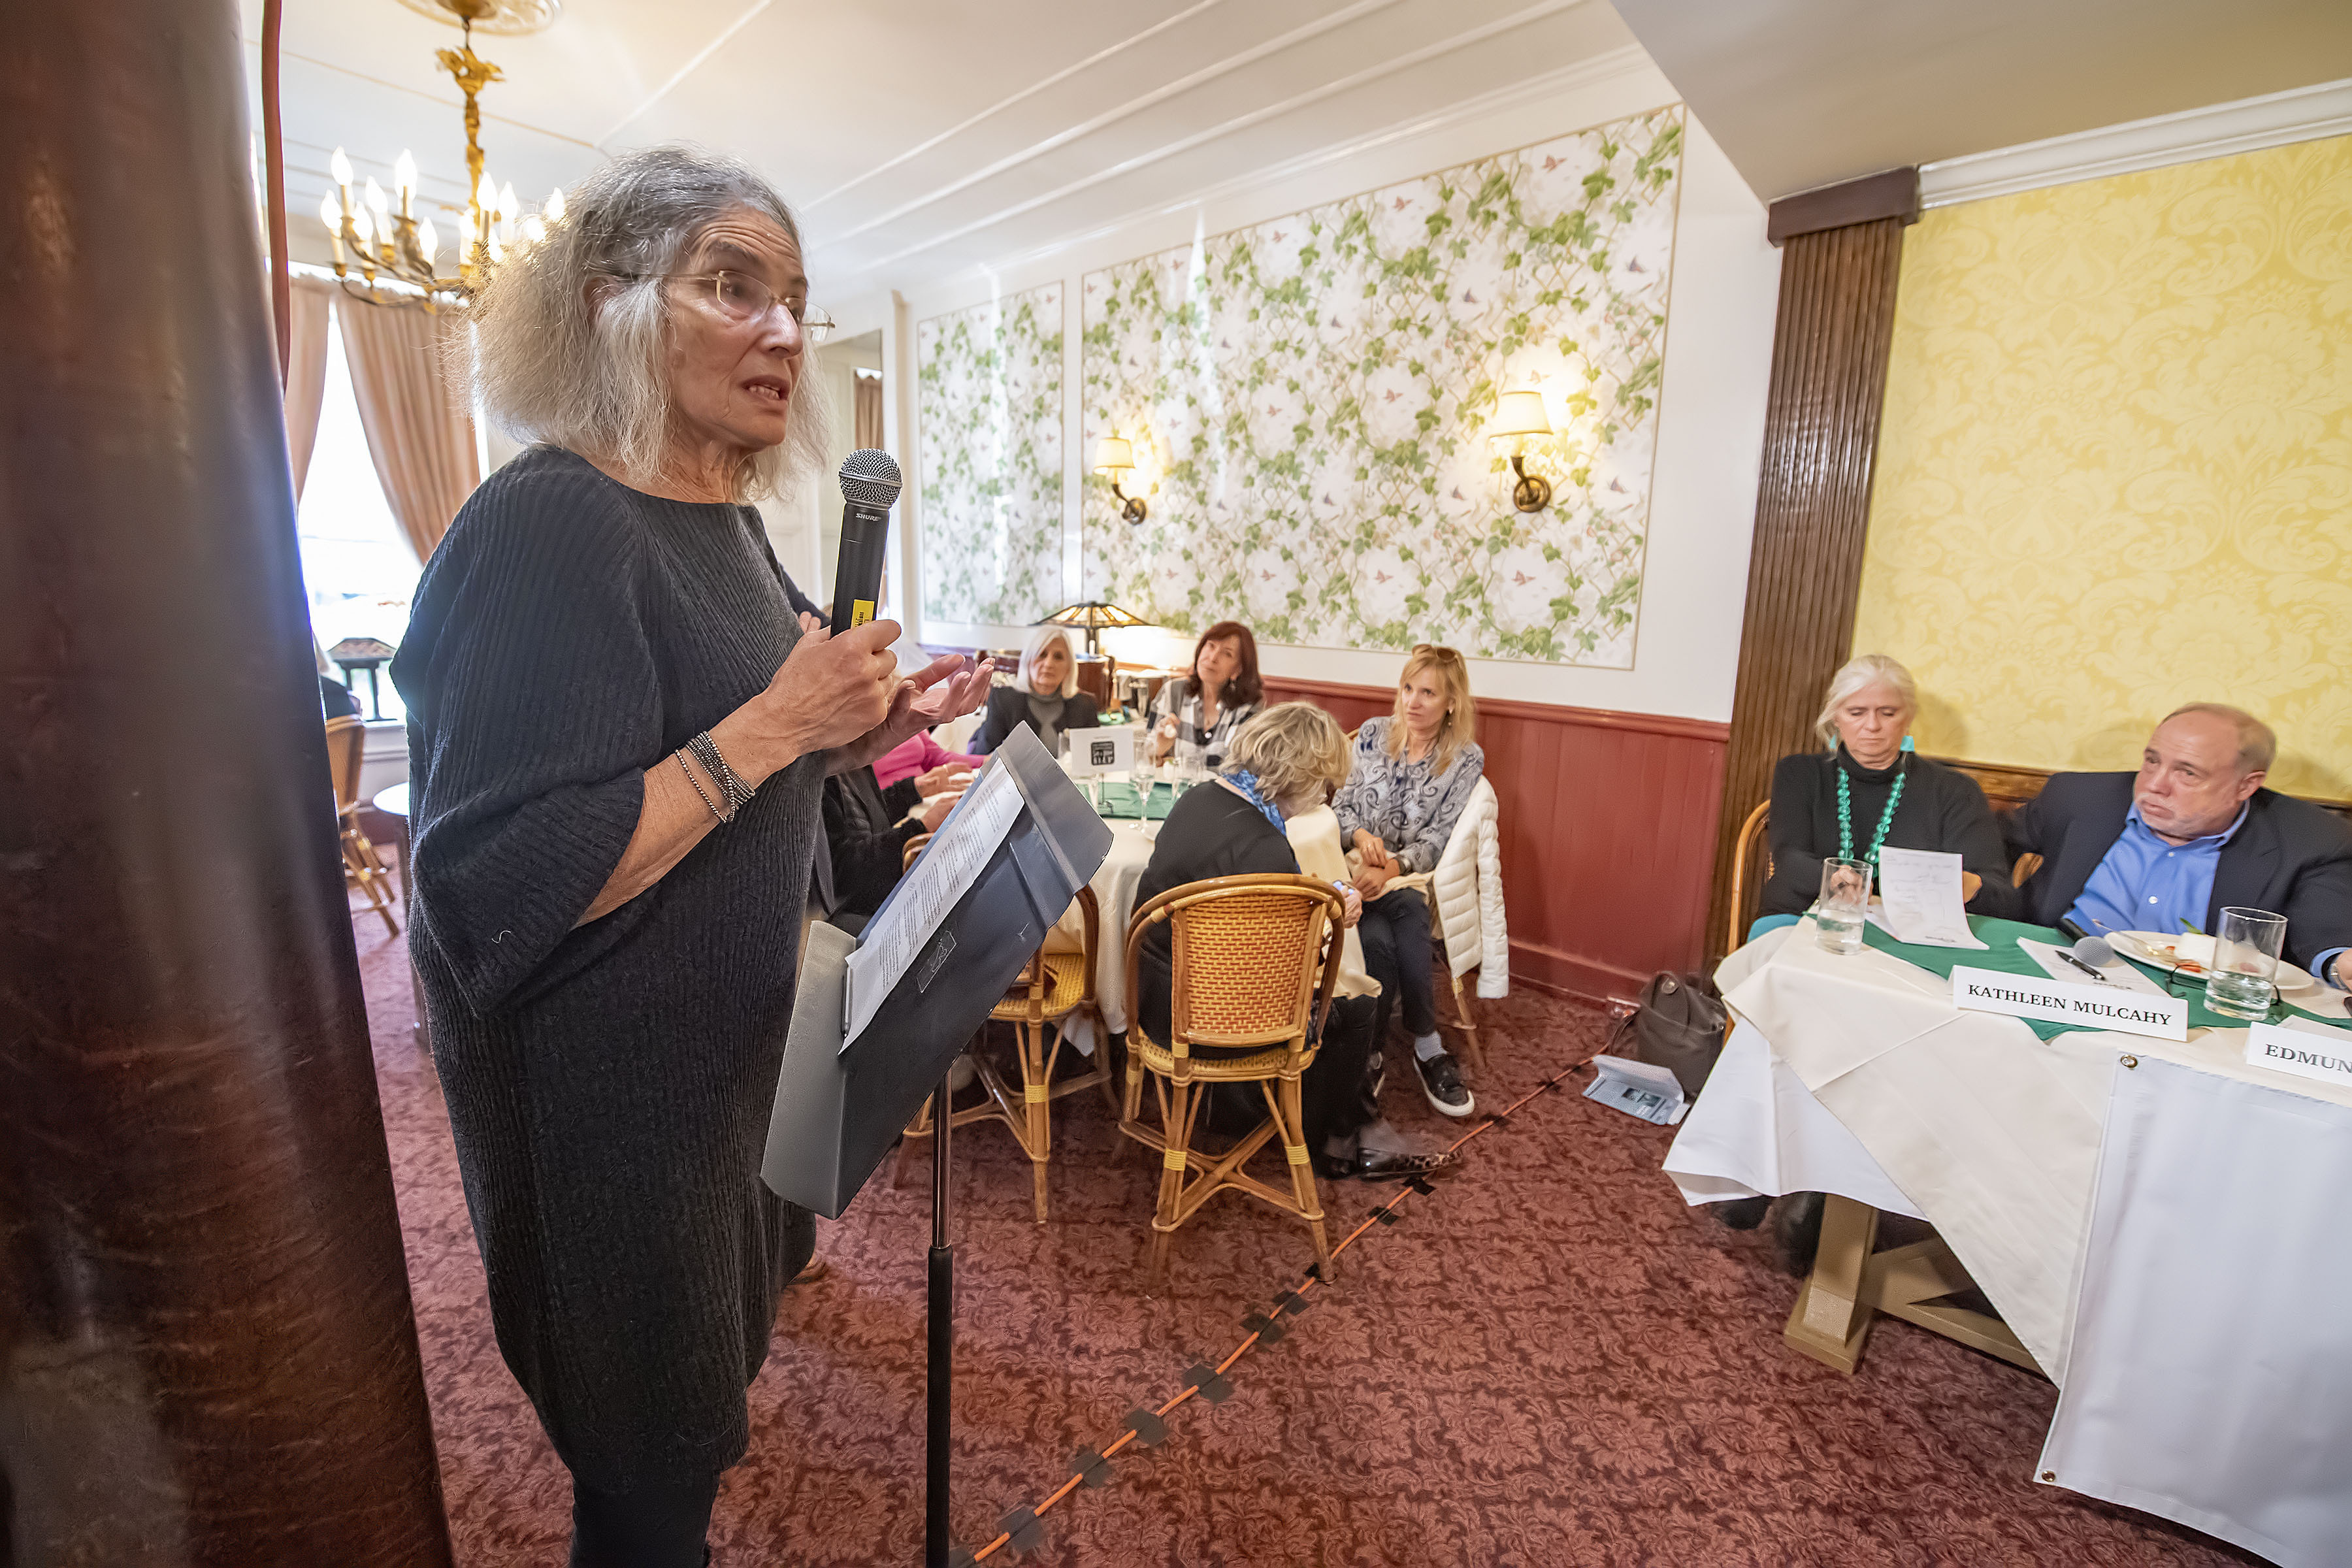 An attendee poses a question to the panel during the Express Sessions - Sag Harbor Public Spaces event at the American Hotel in Sag Harbor on Friday.  MICHAEL HELLER